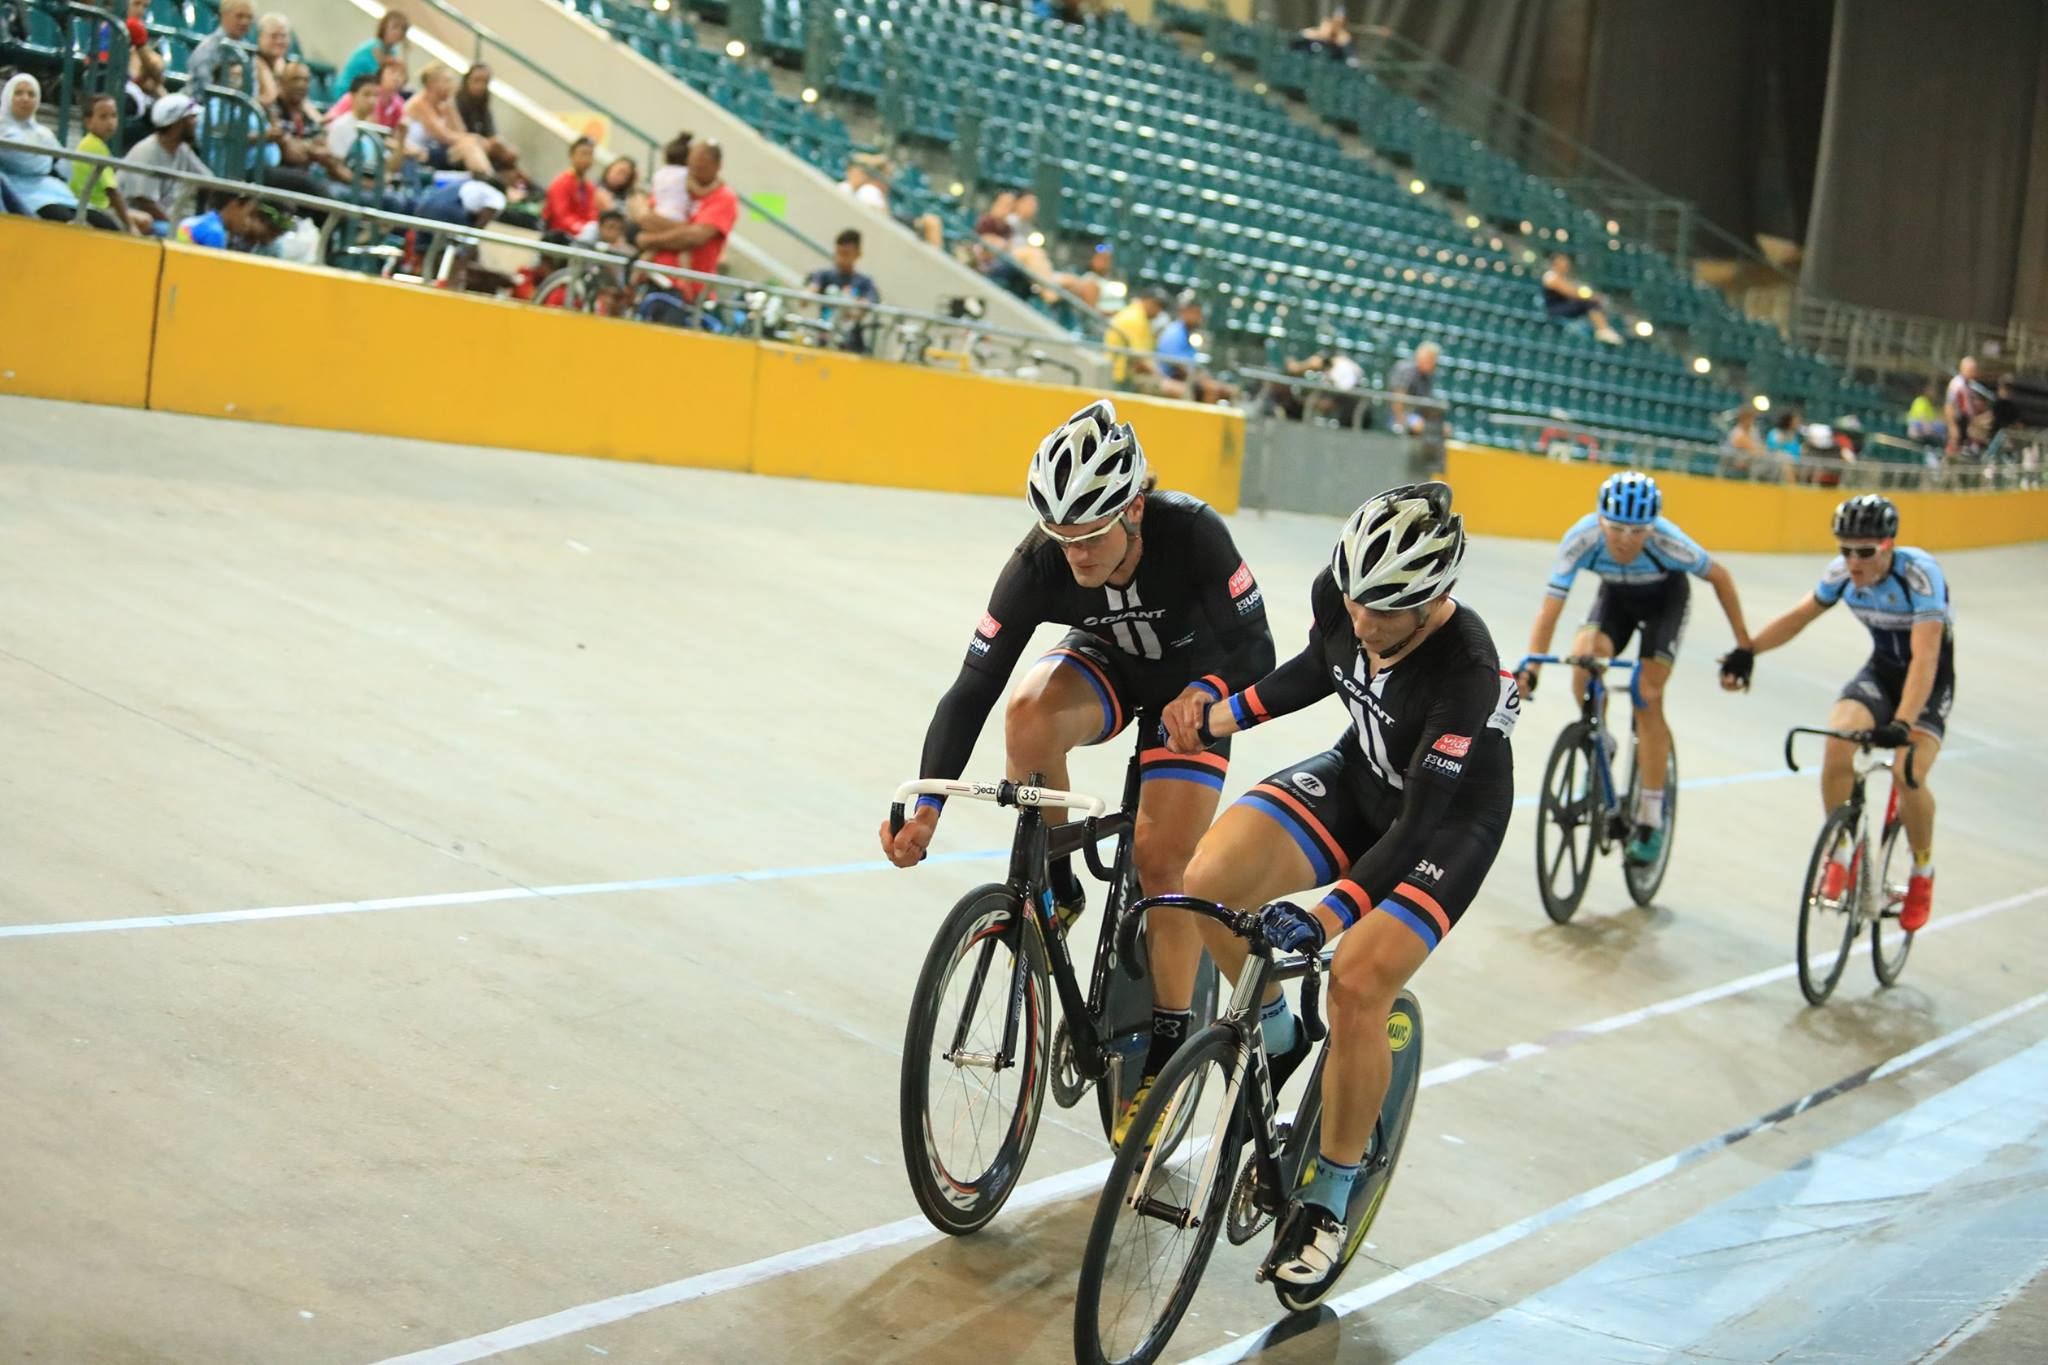 Bernard Esterhuizen and Evan Carstens (pictured front), racing on their home track, were exceptional on the day and in a class of their own, claiming the Open victory SA National Madison Championships at the Bellville Velodrome on Saturday 17 December 2016.Photo credit: Owen Lloyd